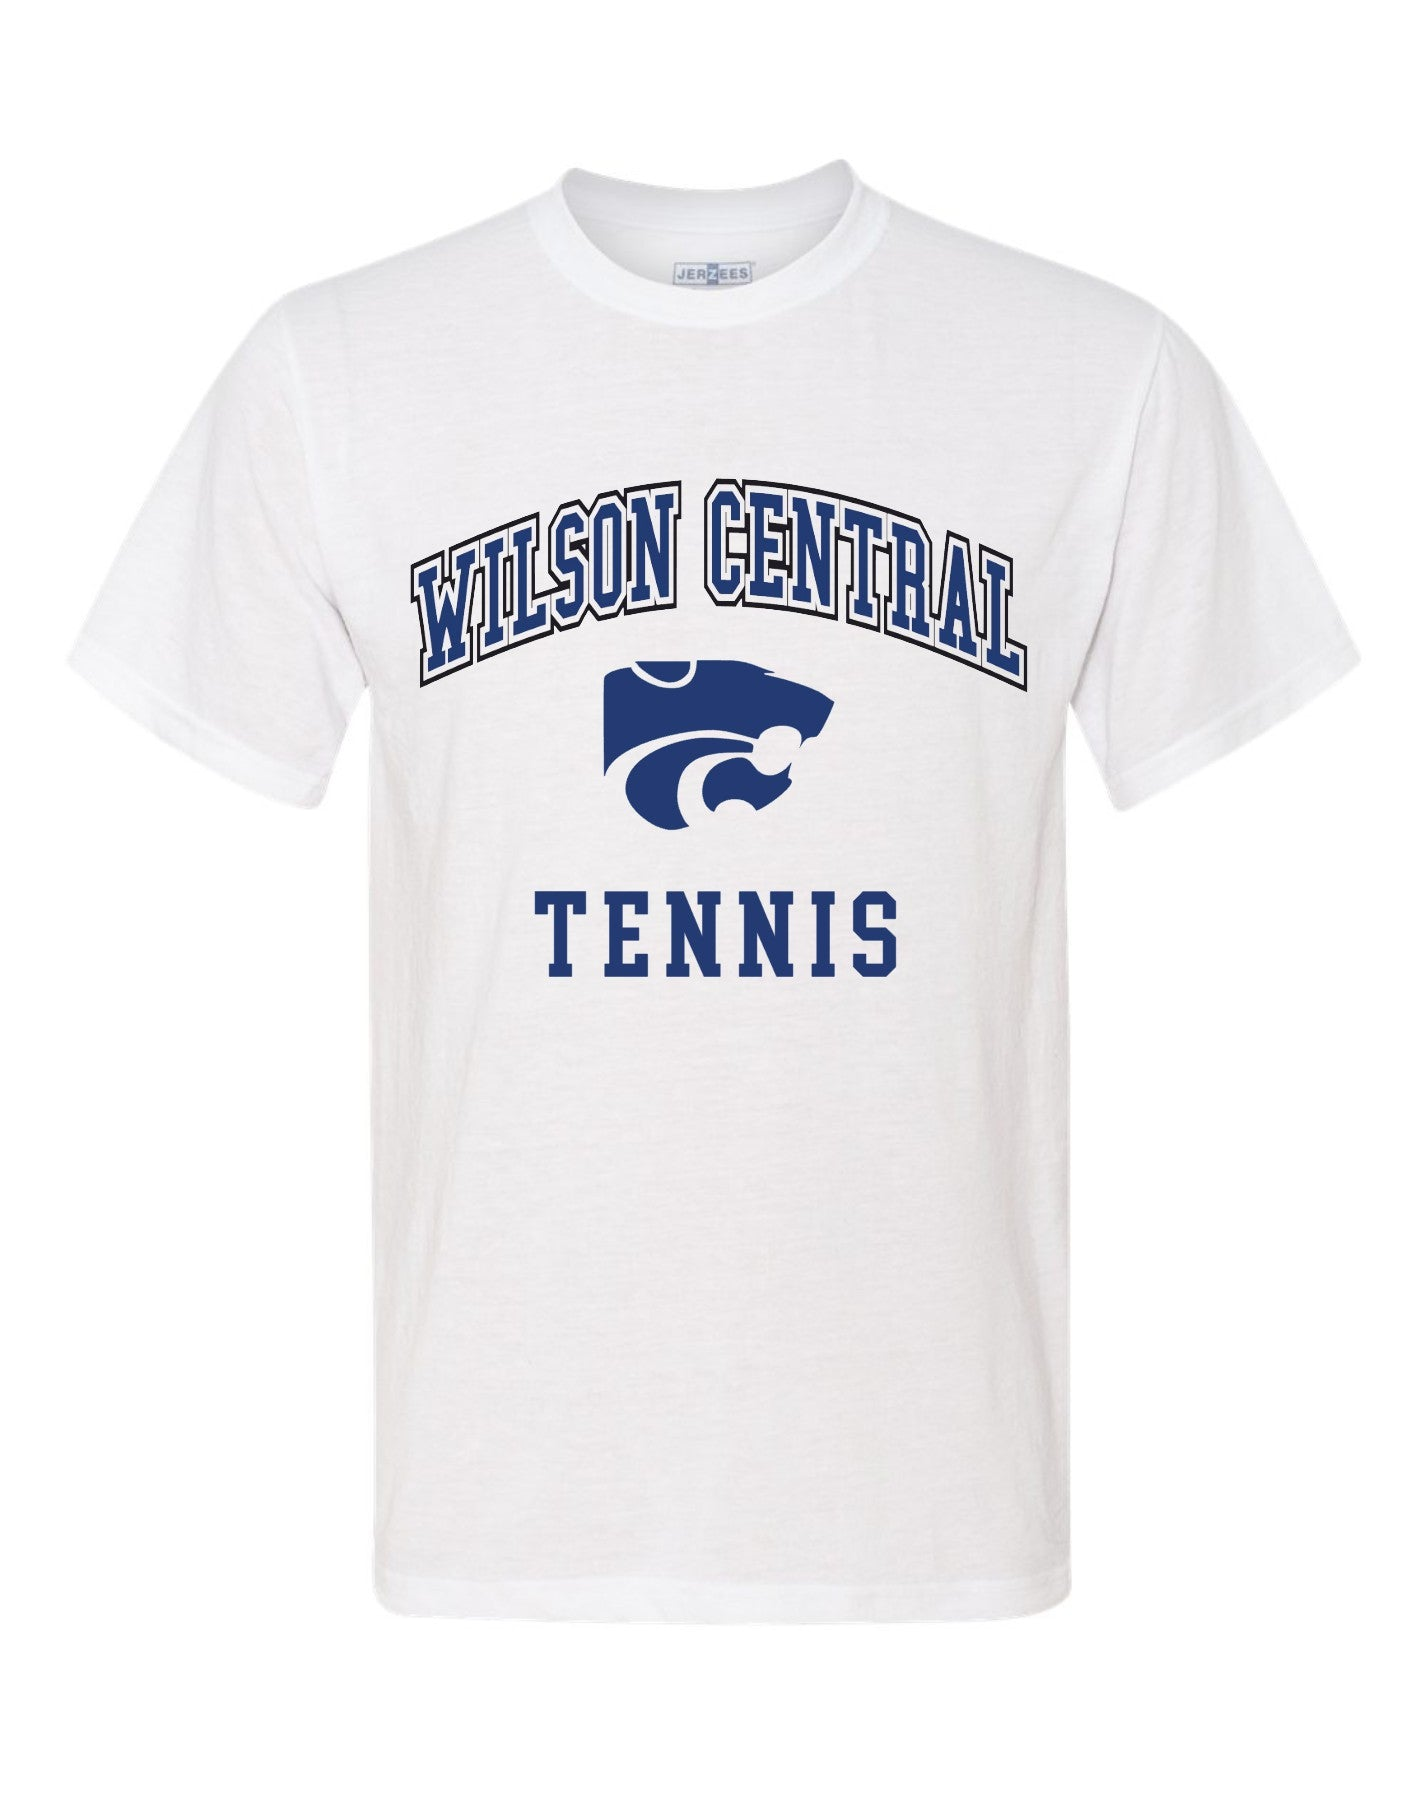 Wilson Central Tennis - White Short Sleeve